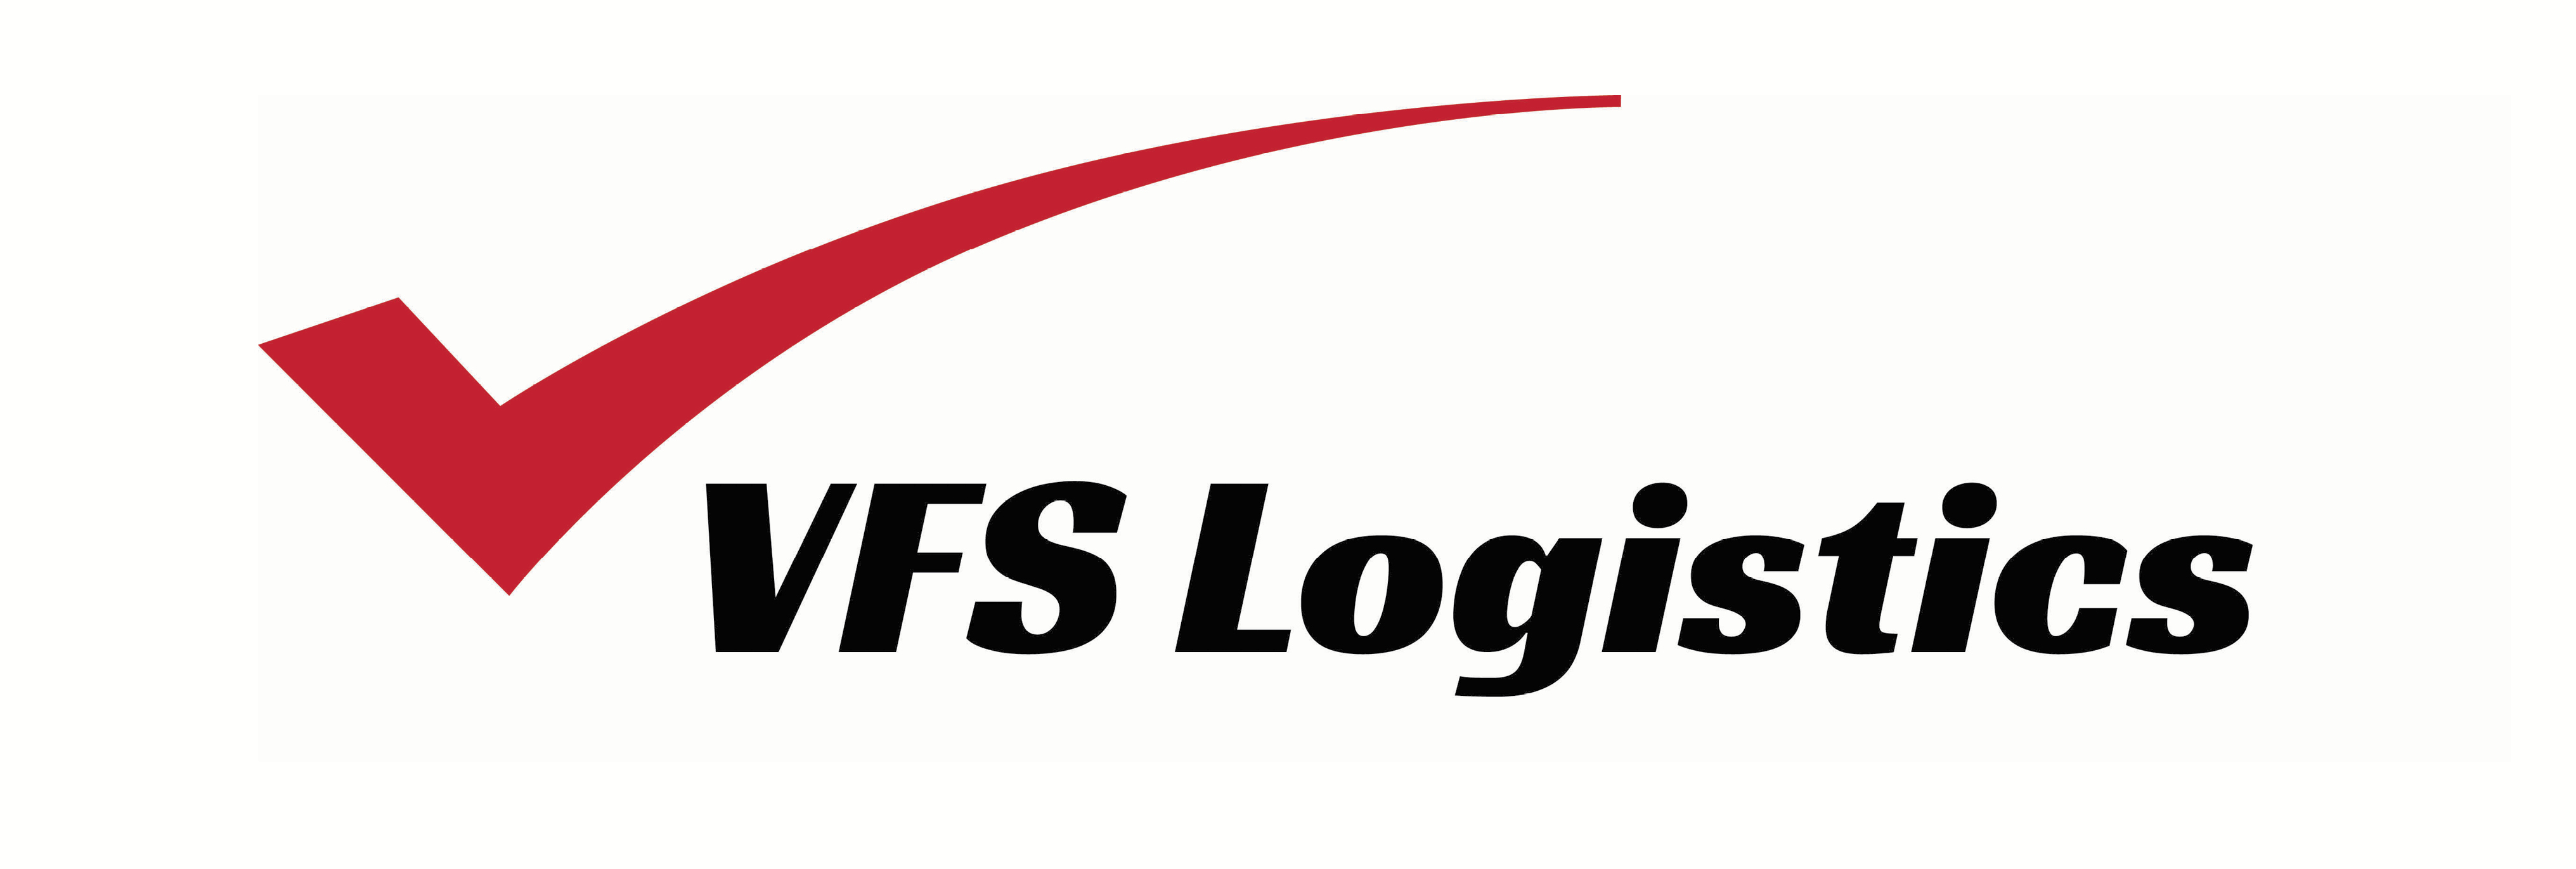 VFS Logistics | Odd Poppy Advertising Agency | Johannesburg | Clients